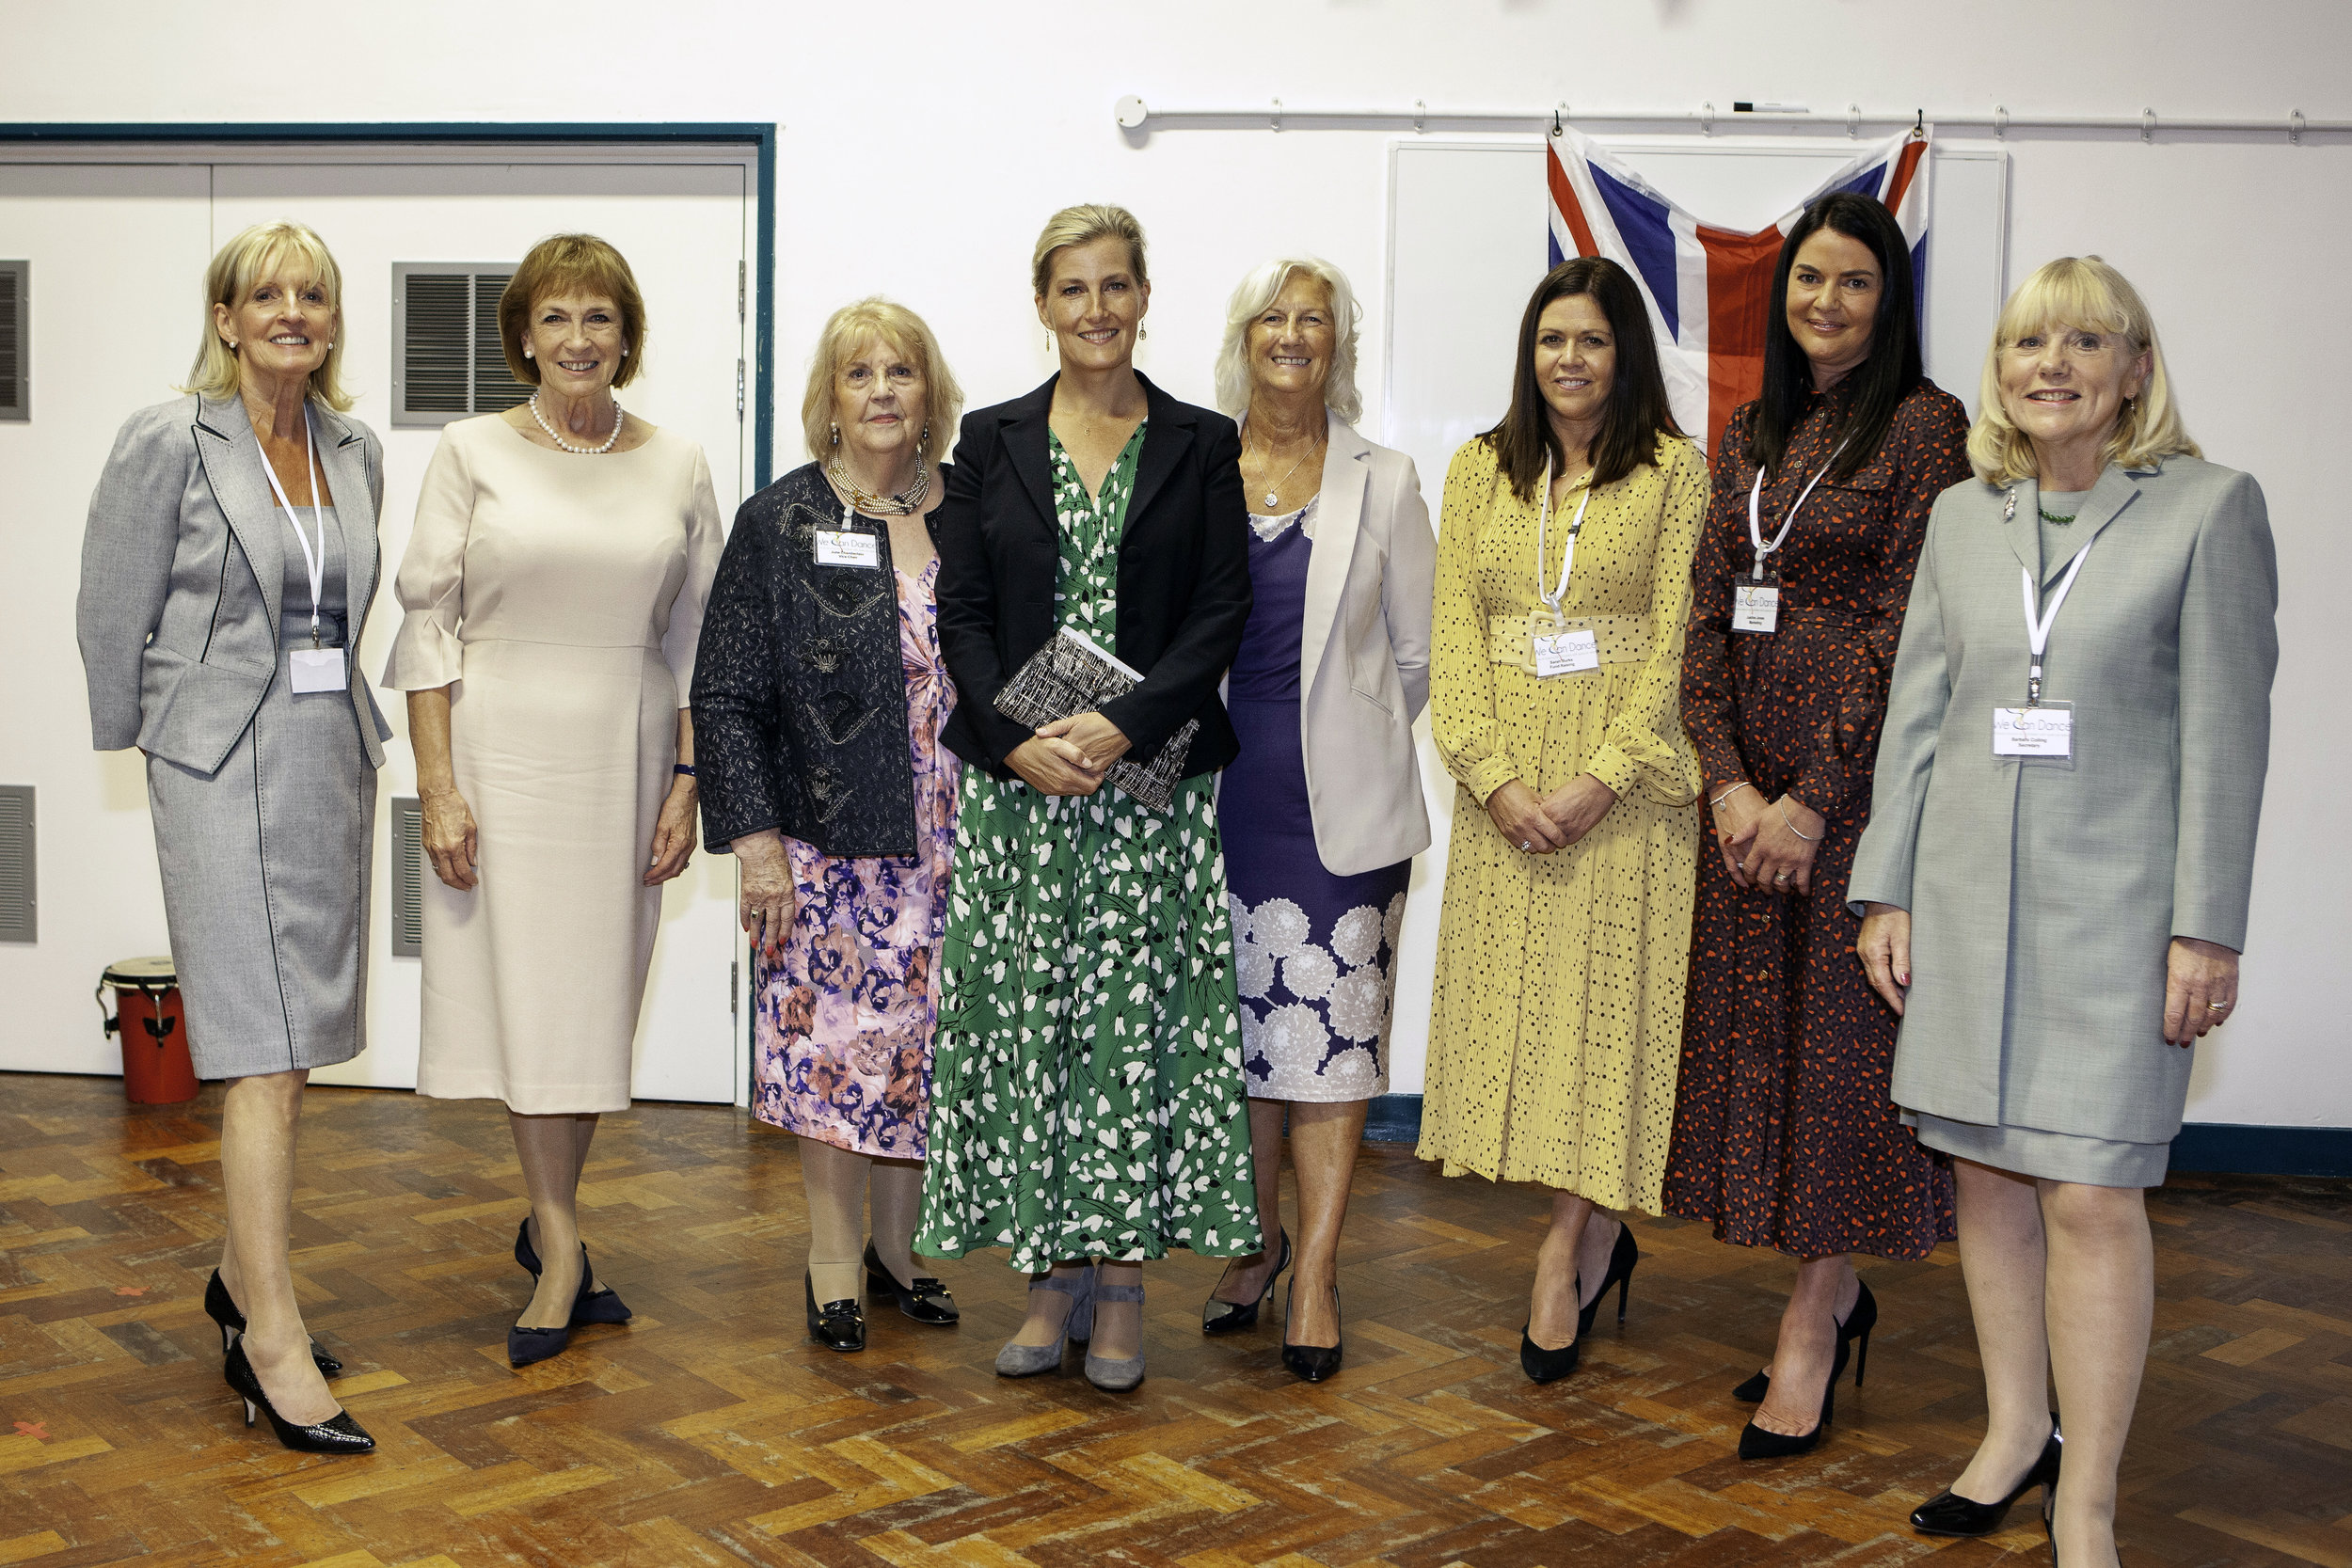 Some of our Trustees and Committee Members with HRH The Countess of Wessex during her recent visit to see We Can Dance in action at the Forest School, Knaresborough, North Yorkshire.